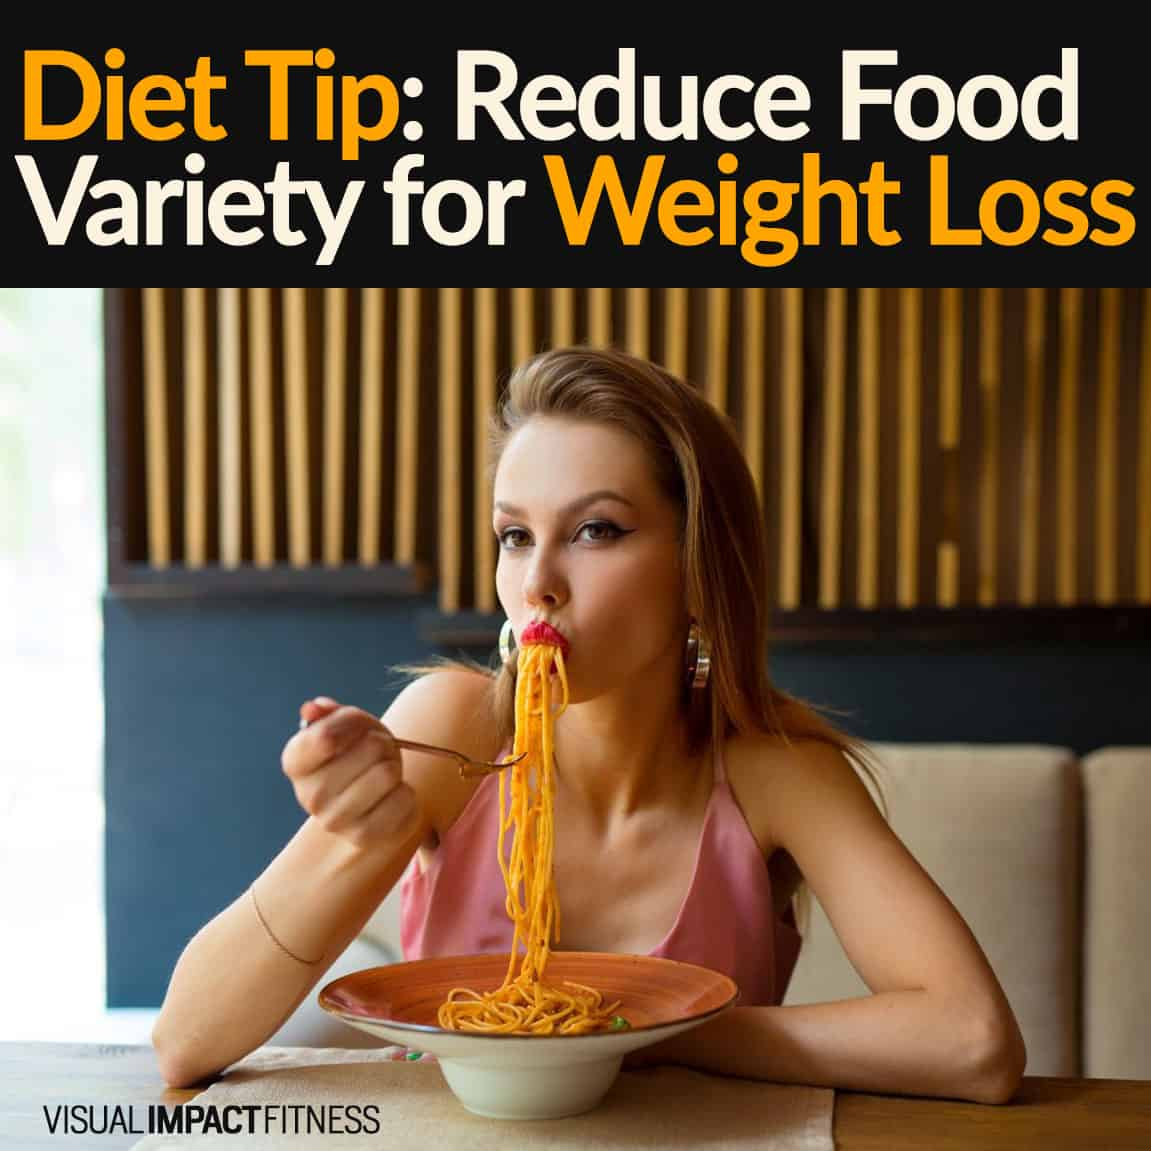 Diet Tip: Reduce Food Variety for Weight Loss